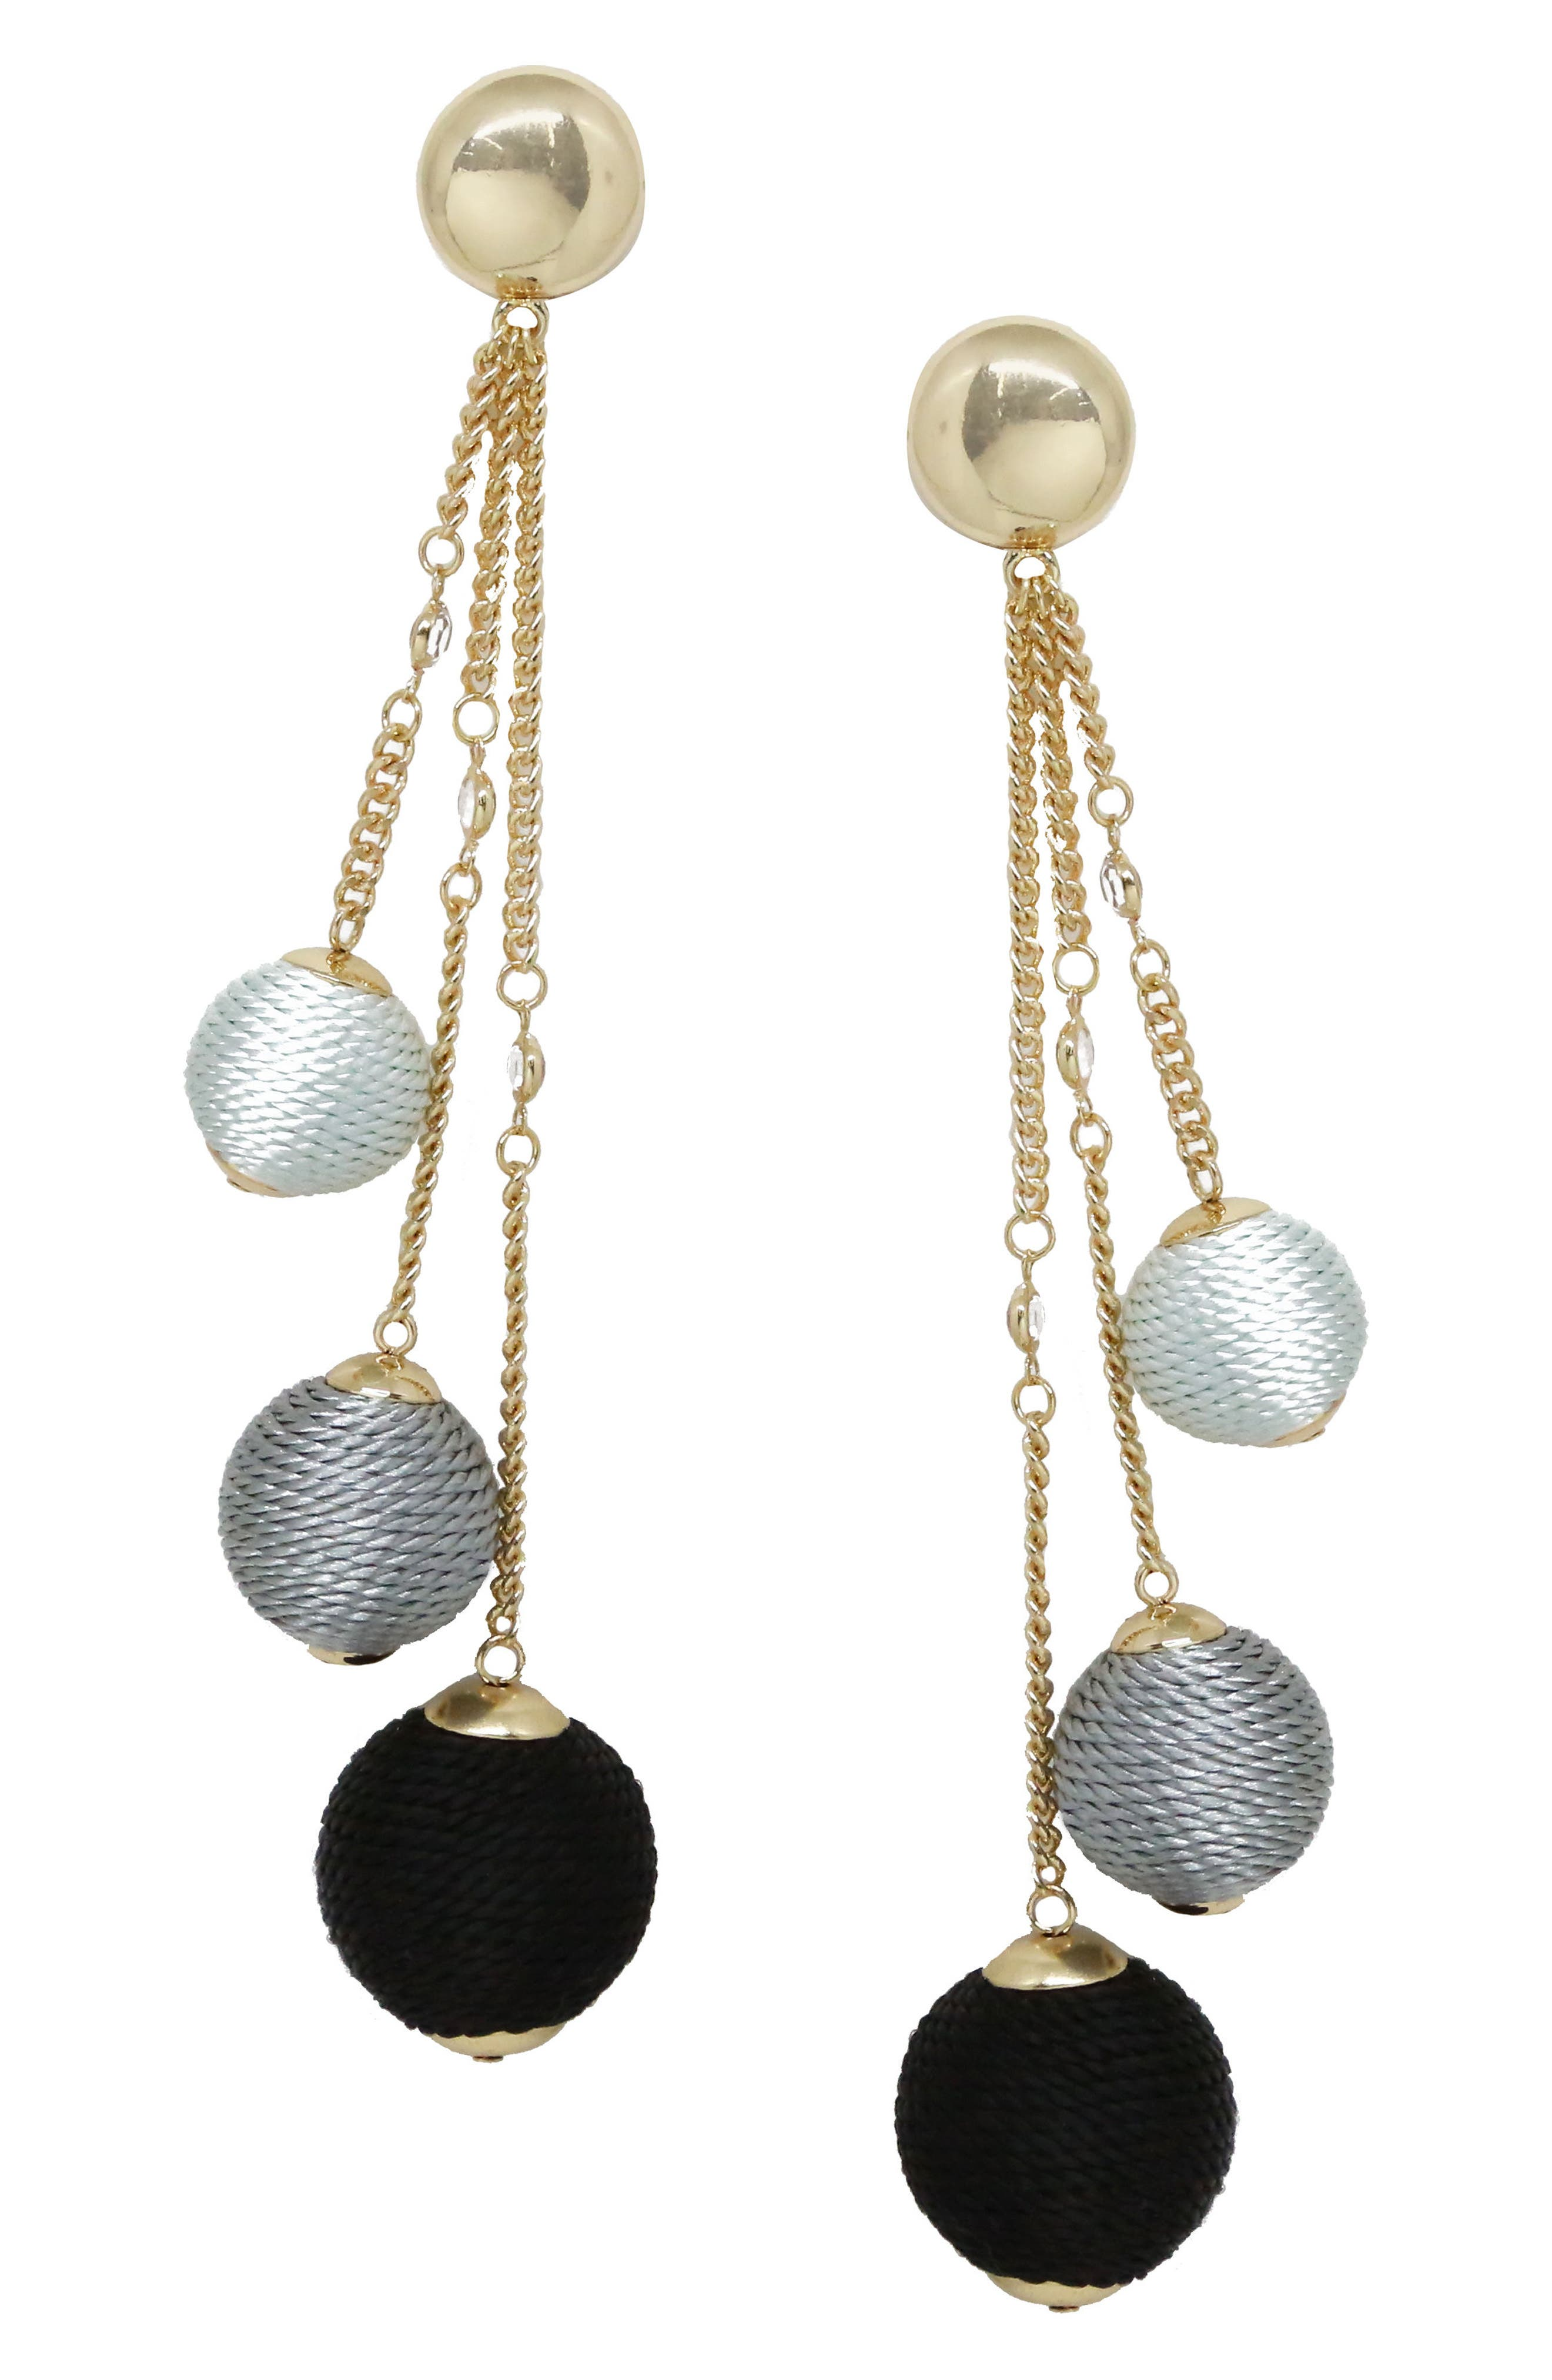 ETTIKA Wrapped Ball & Chain Statement Earrings, Main, color, 001